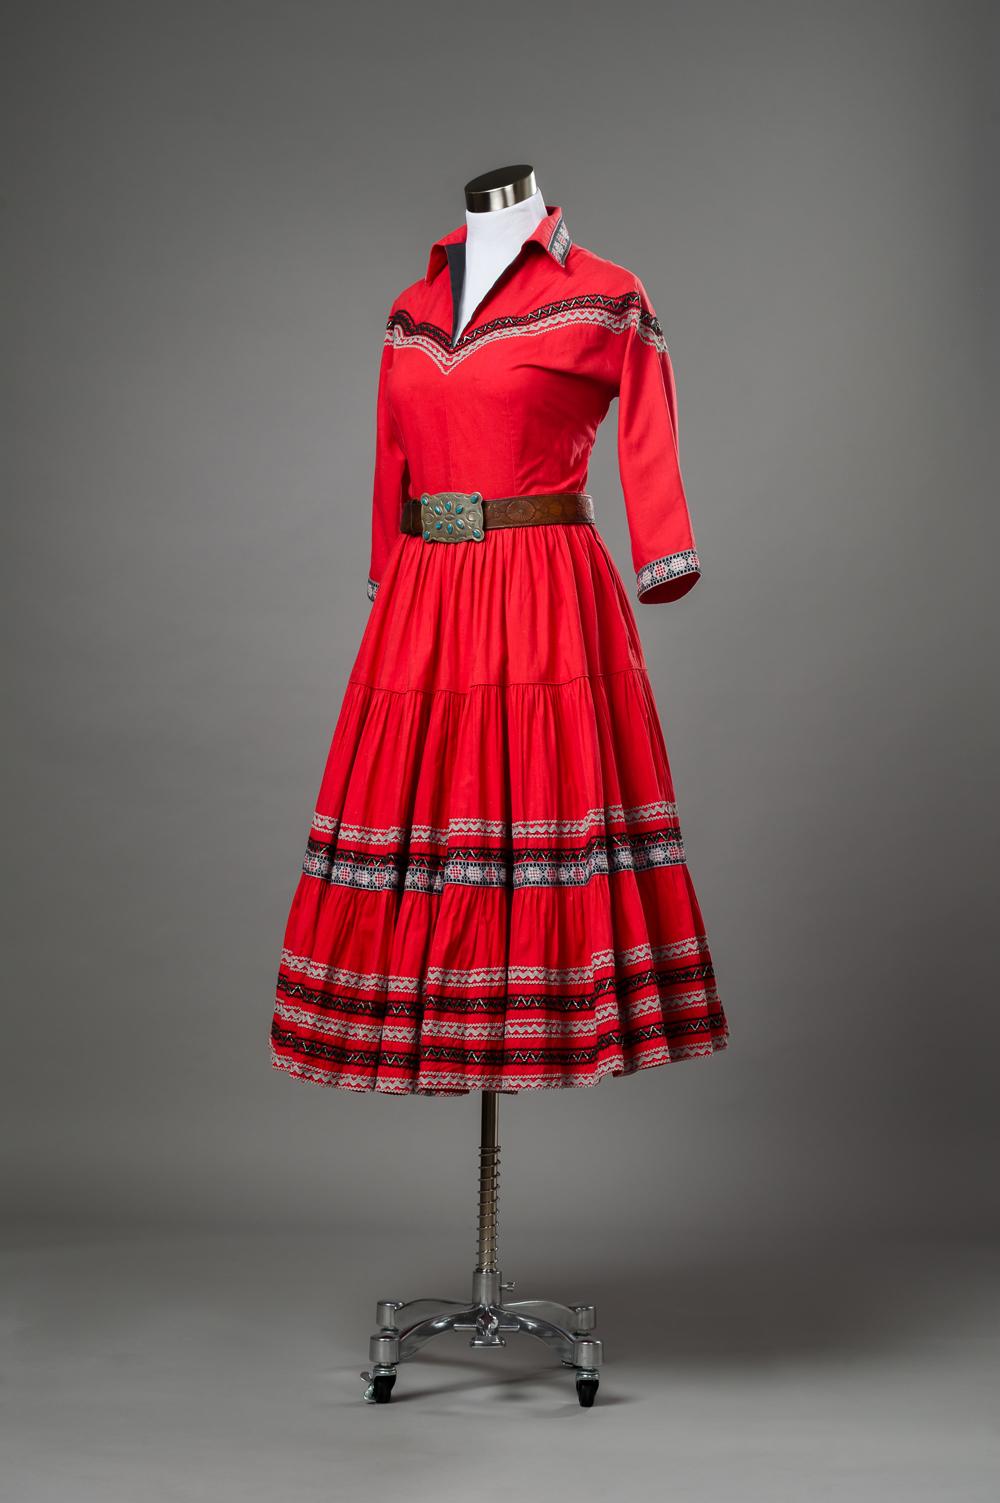 The squaw dress: A patch of Tucson's fashion history